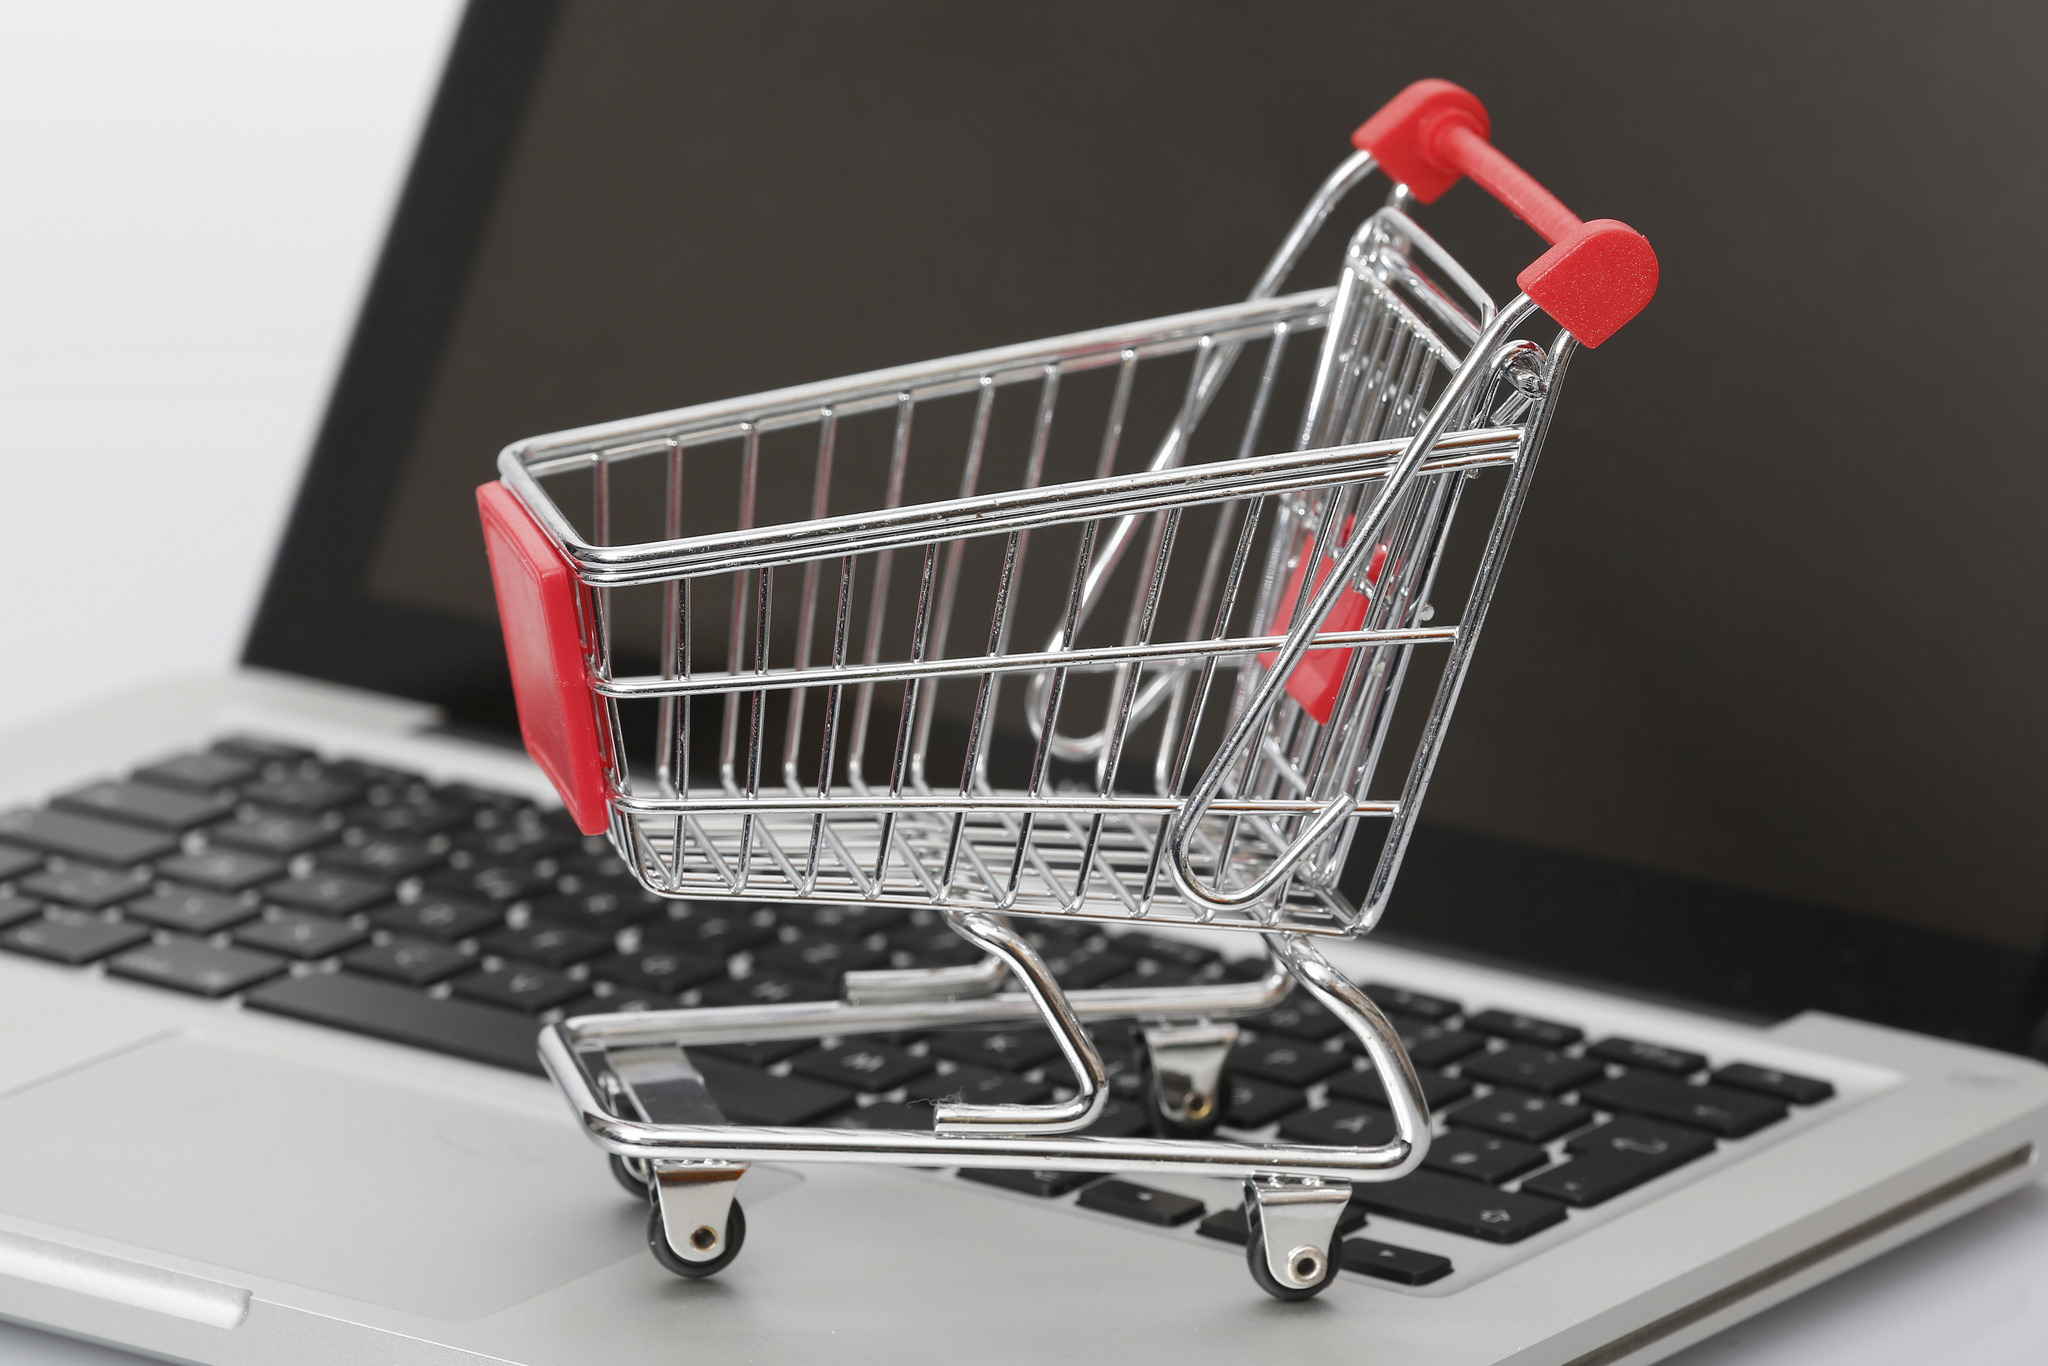 South Korea's online shopping sales surged 20.1 percent on-year during the fourth quarter of 2014. (image: Tim Reckmann / flickr)